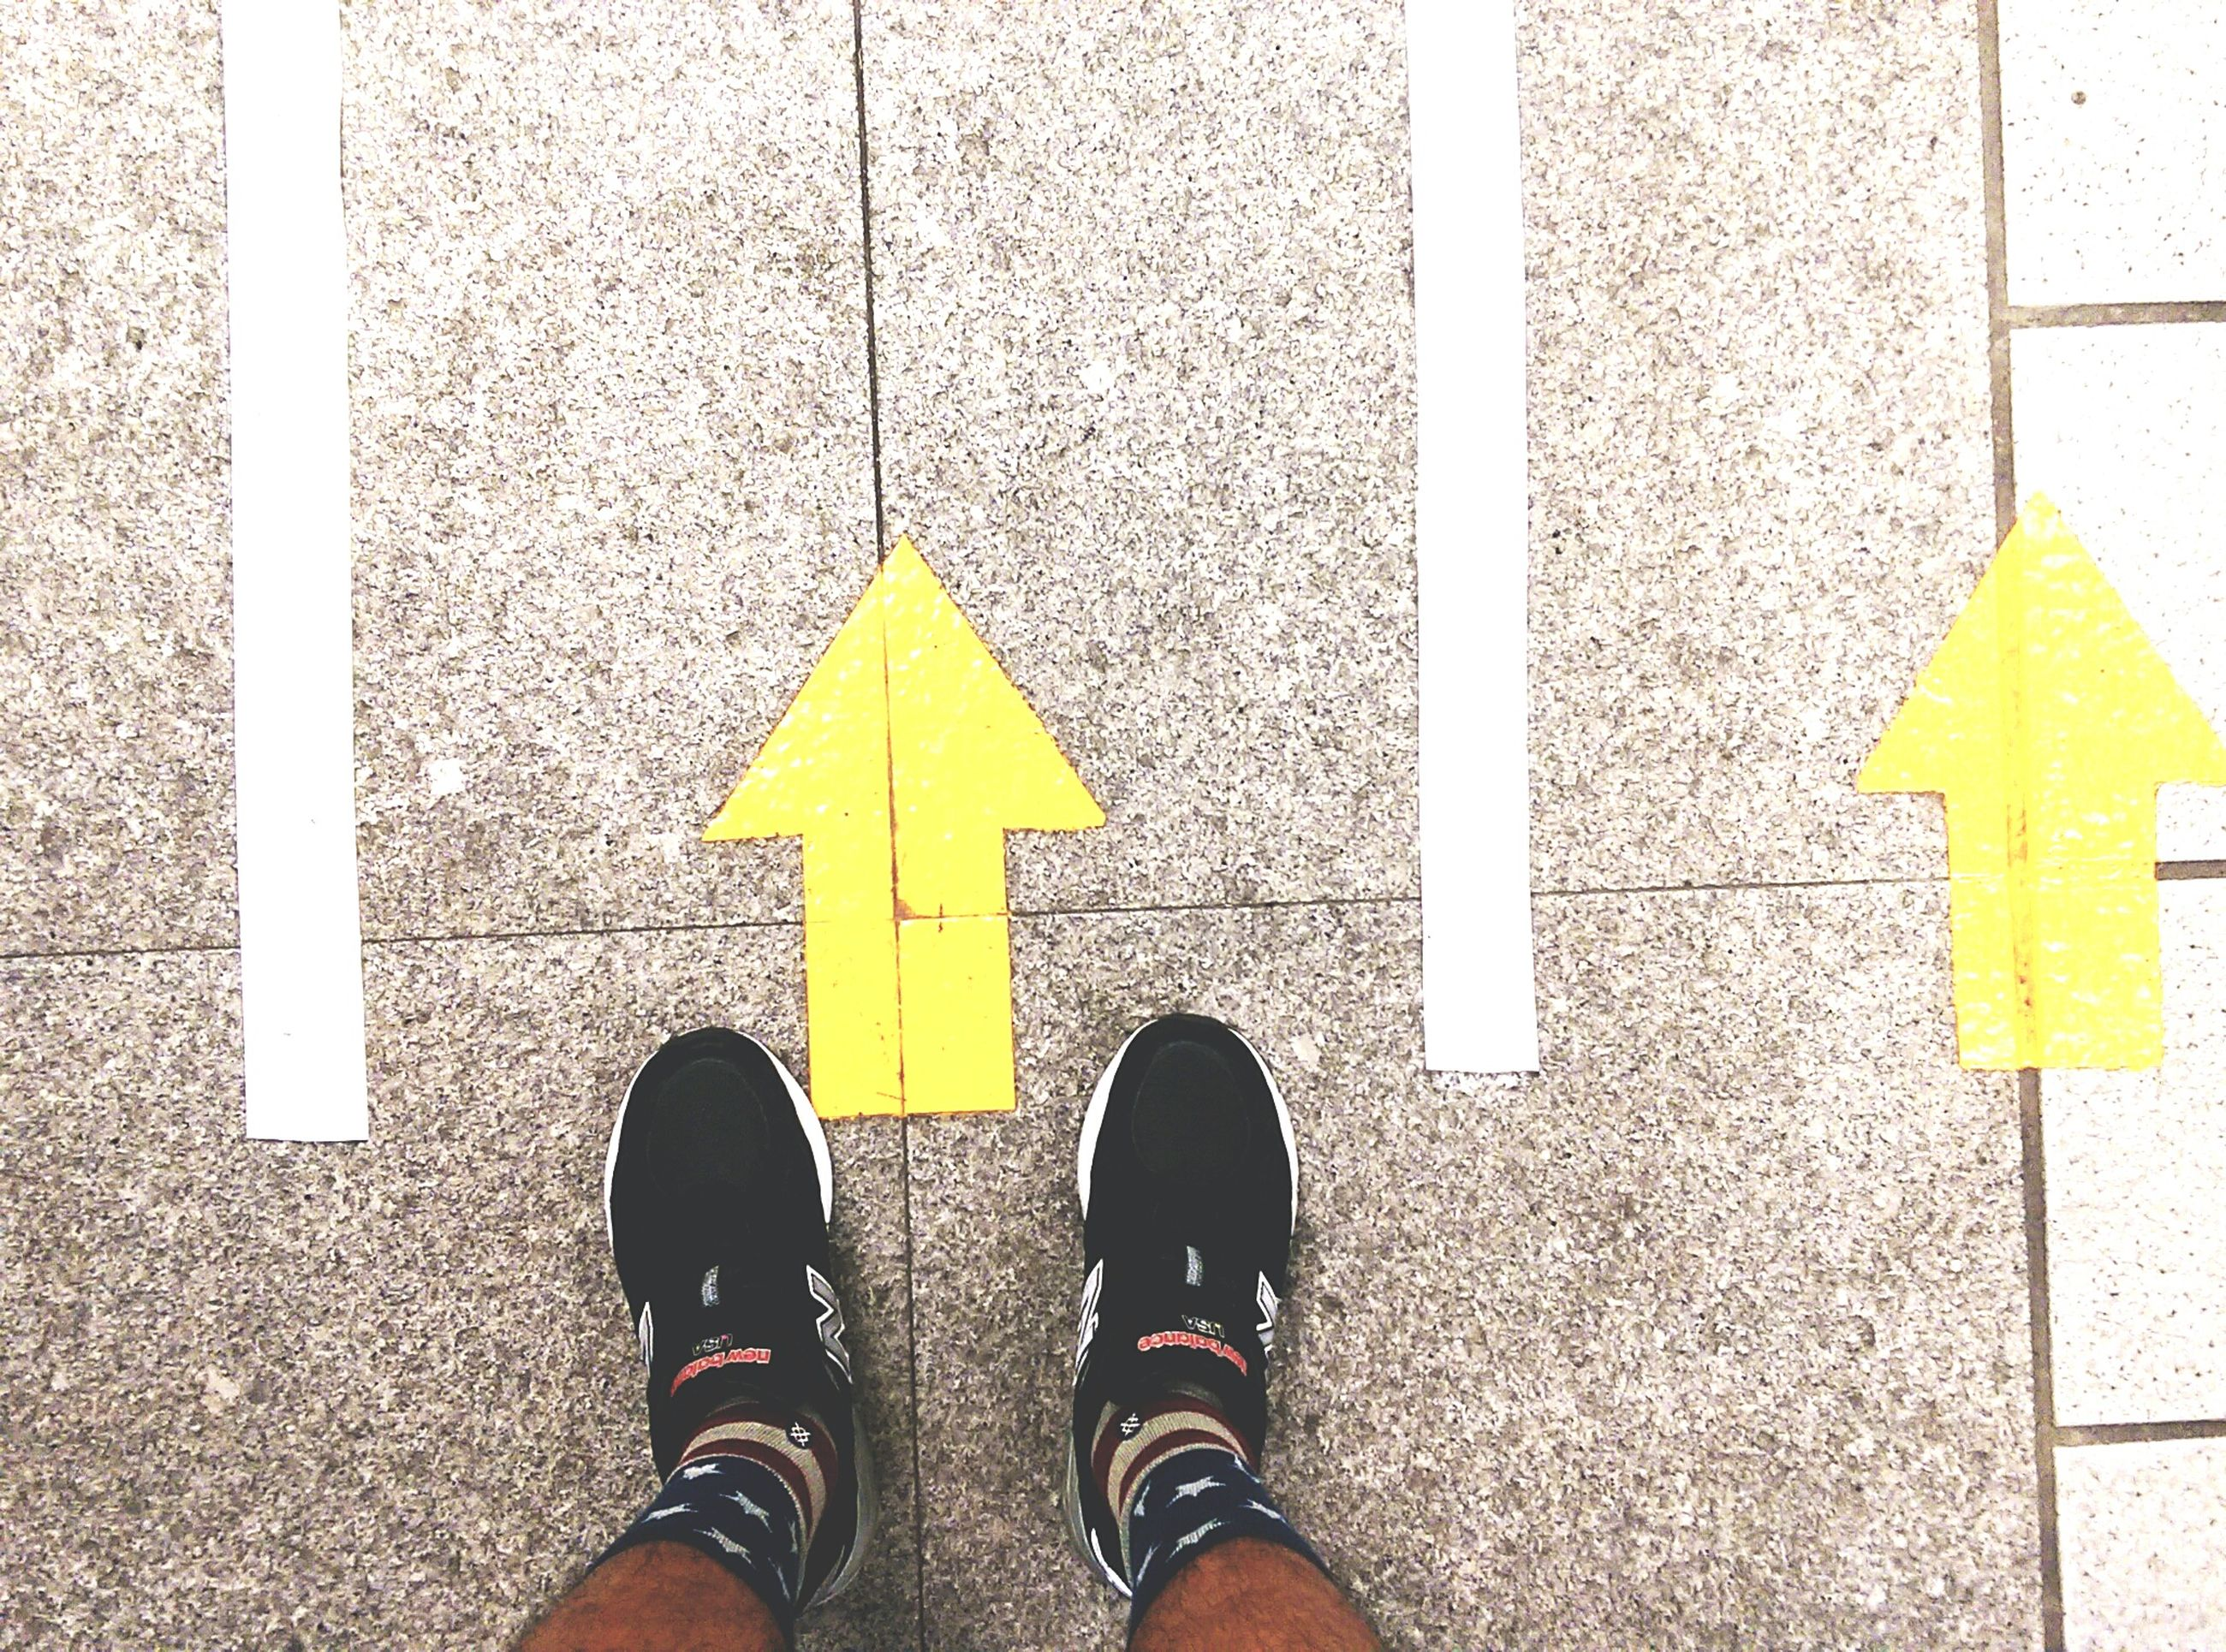 low section, personal perspective, person, standing, shoe, guidance, road marking, street, communication, arrow symbol, sign, lifestyles, yellow, human foot, direction, men, text